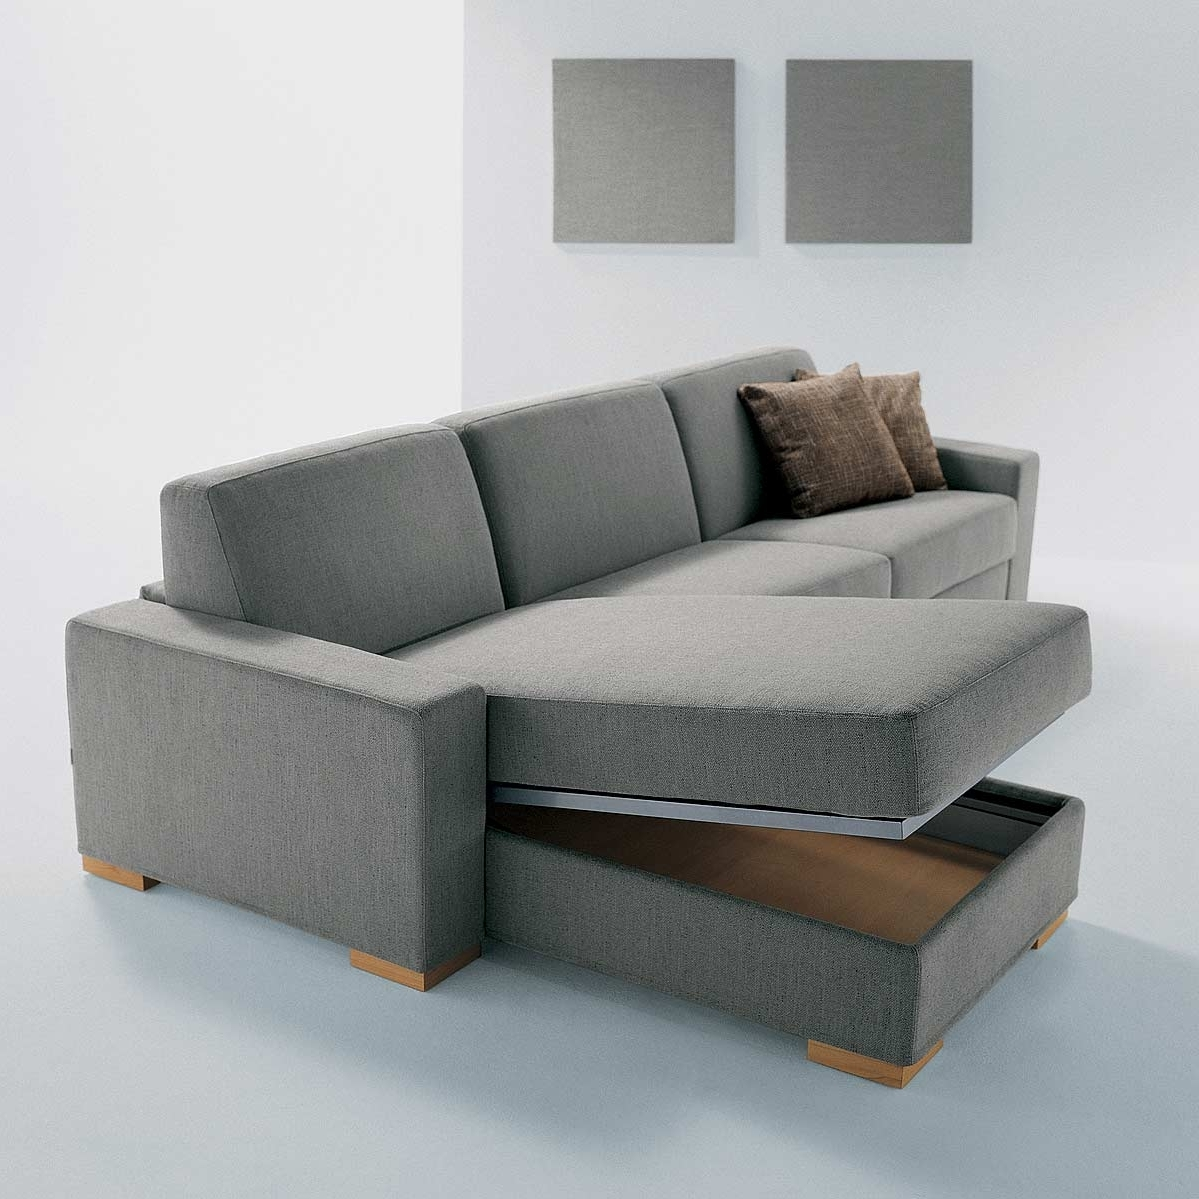 Widely Used Furniture : Sofa With Drawers Fabric Sectional Sofas With Chaise In Sectional Sofas With Storage (View 10 of 20)